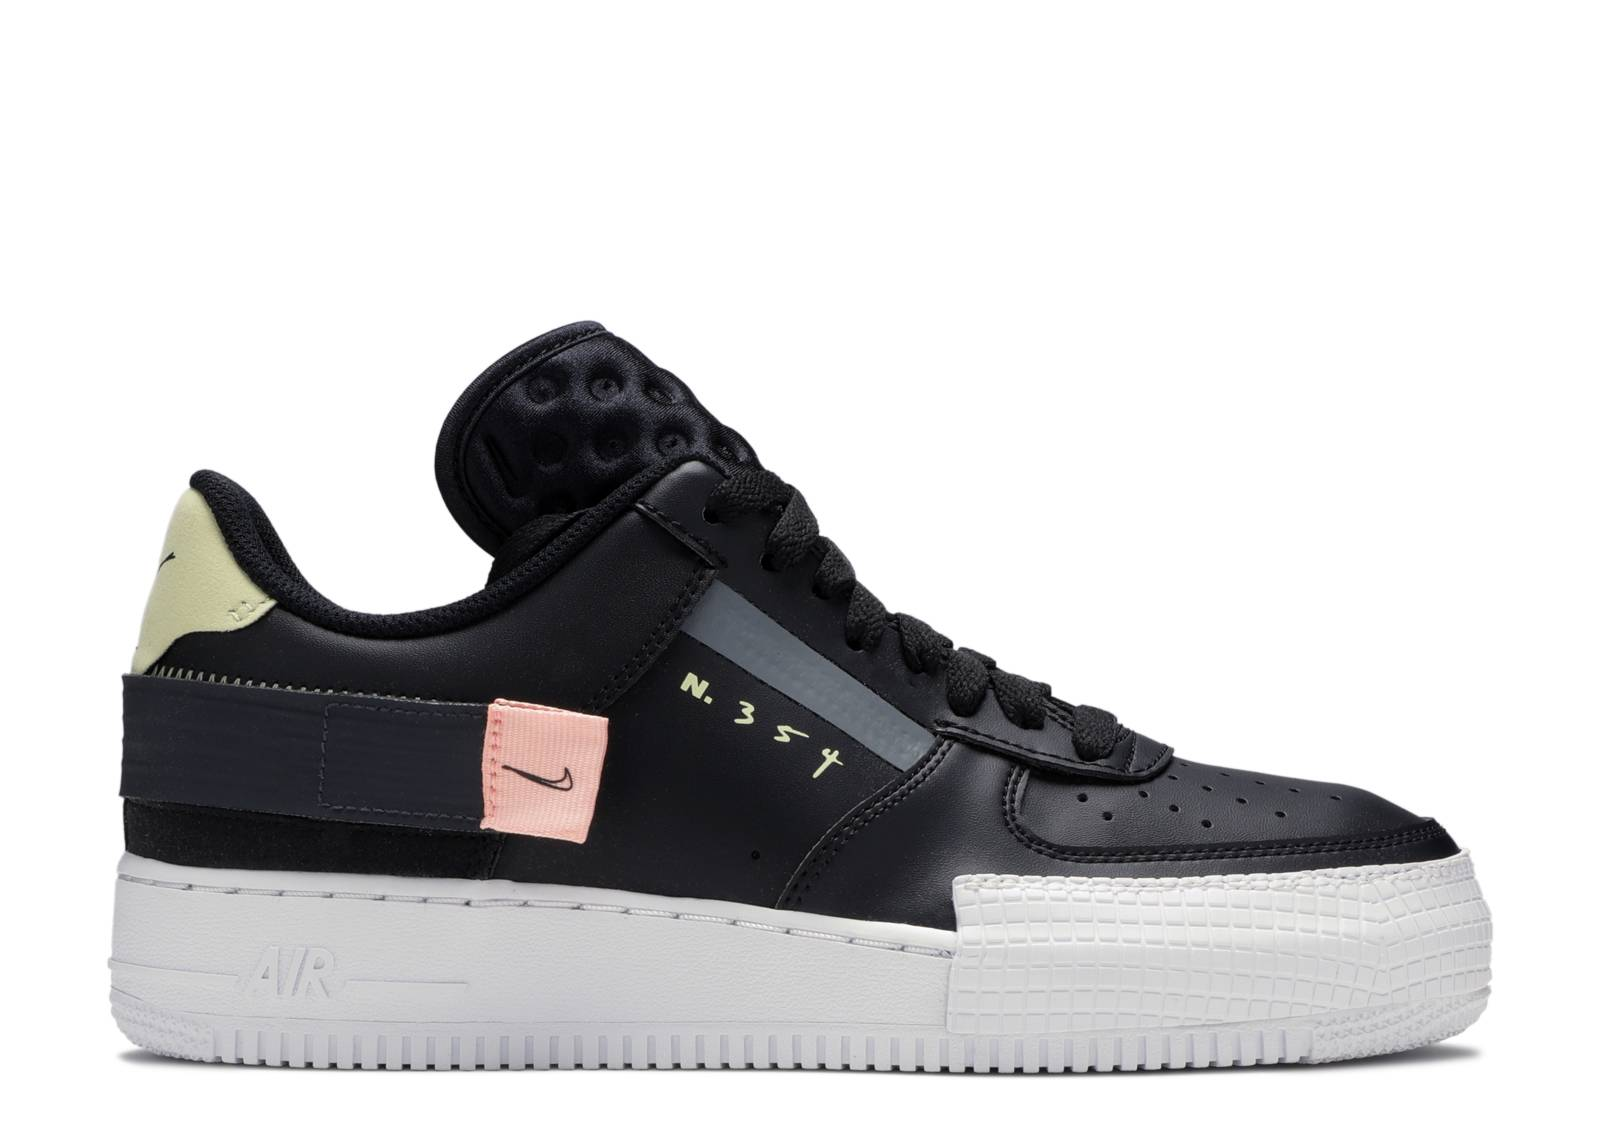 Air Force 1 Low Drop Type